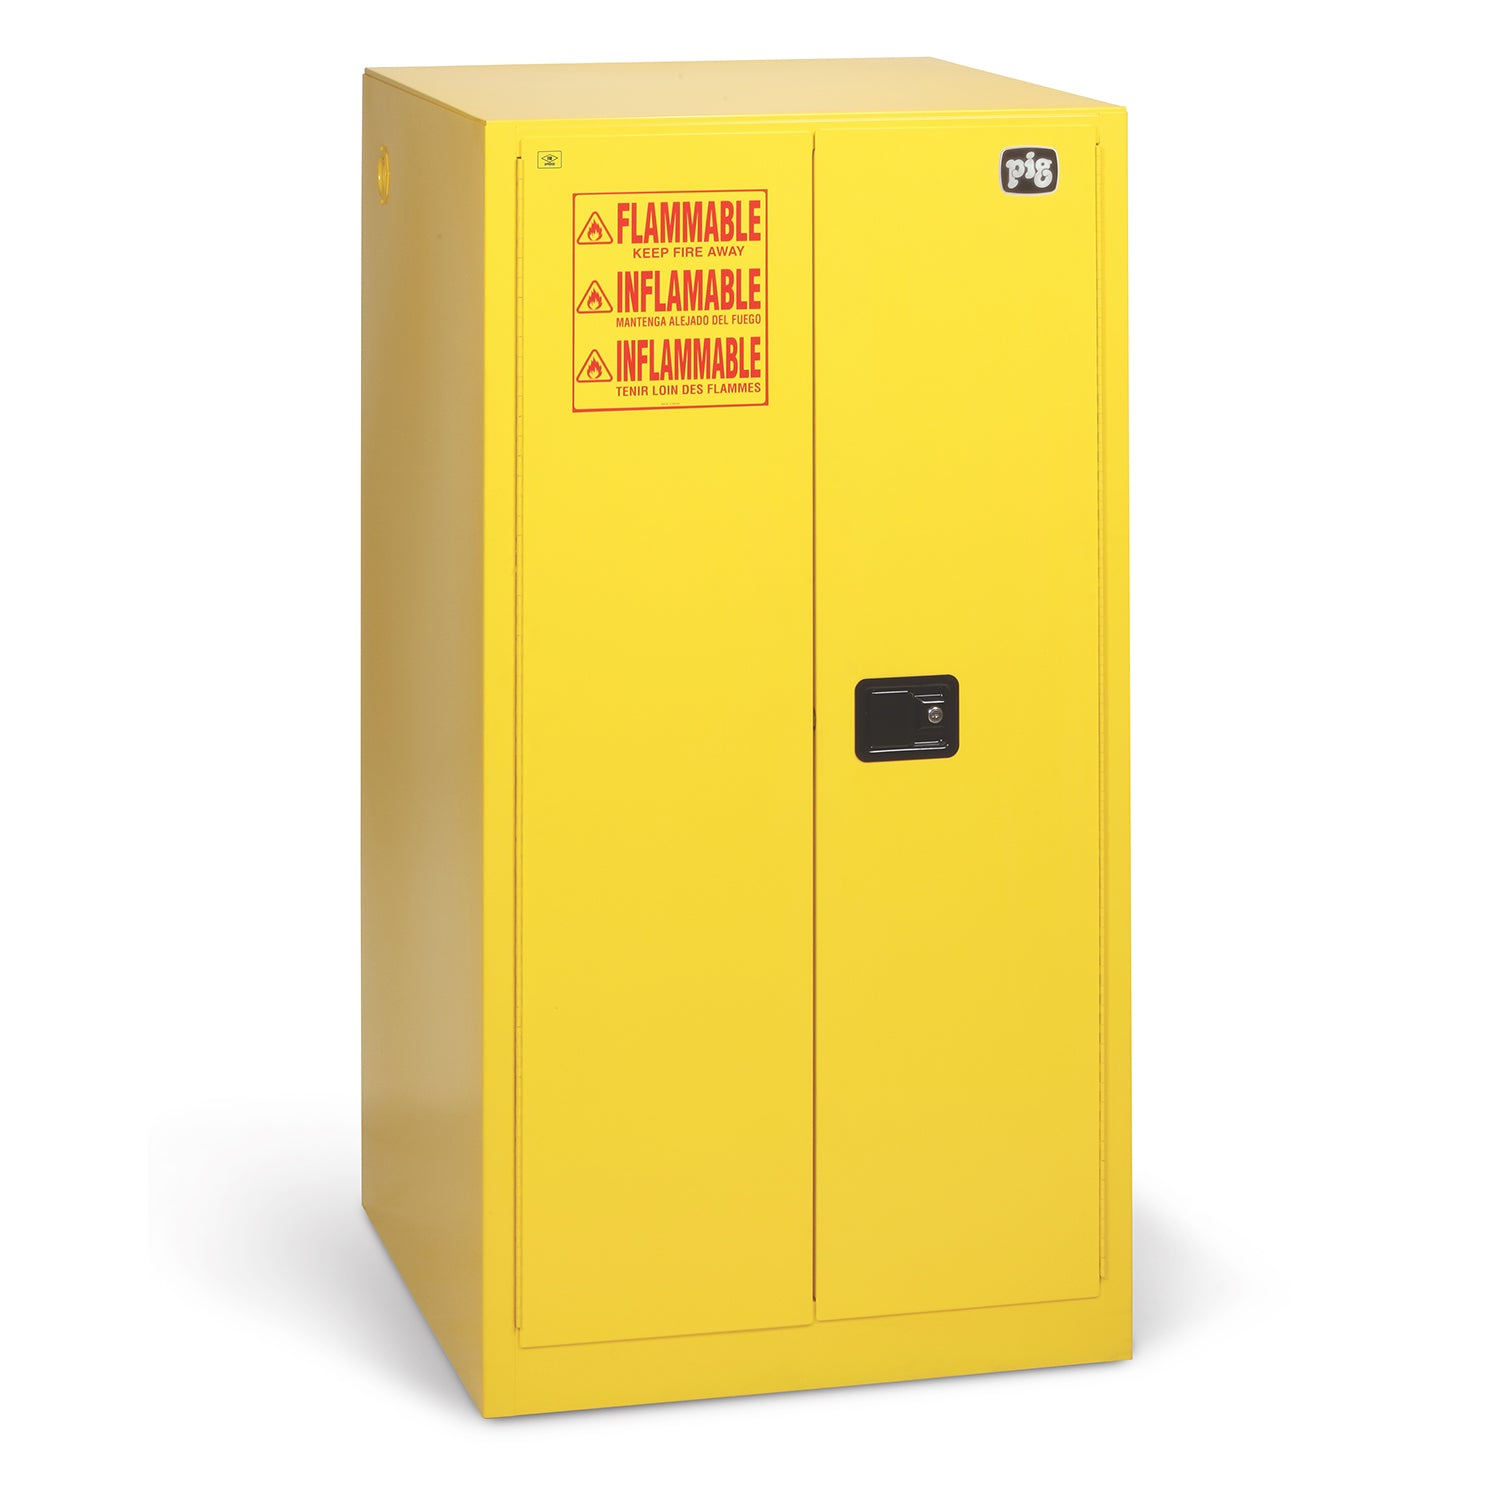 Image of: Pig Flammable Liquid Storage Cabinet Cabk721 New Pig India